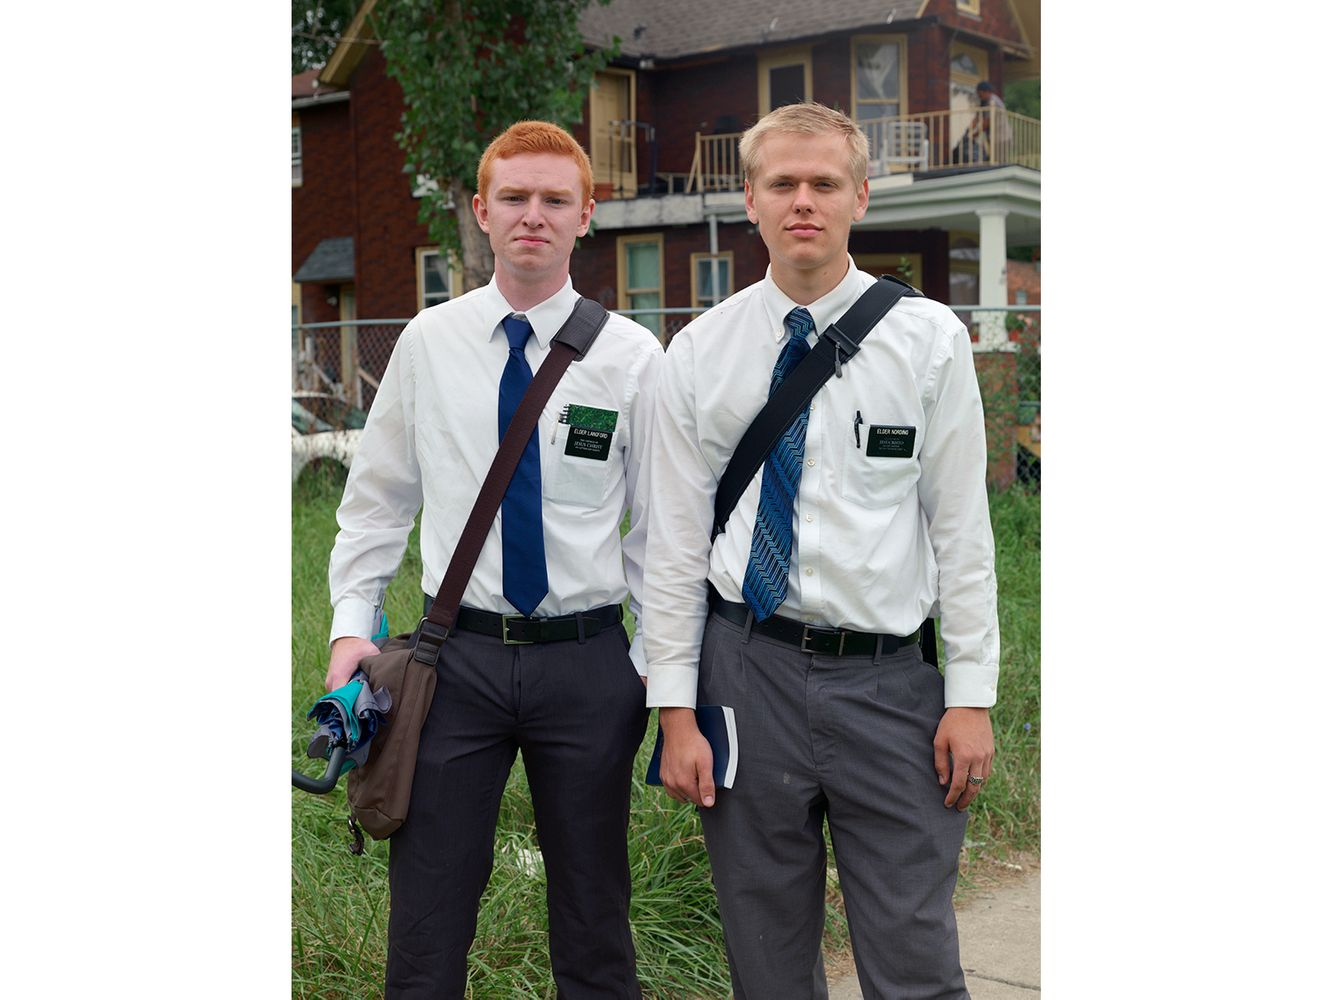 Two Mormon Missionaries,  Southwest Side, Detroit 2014